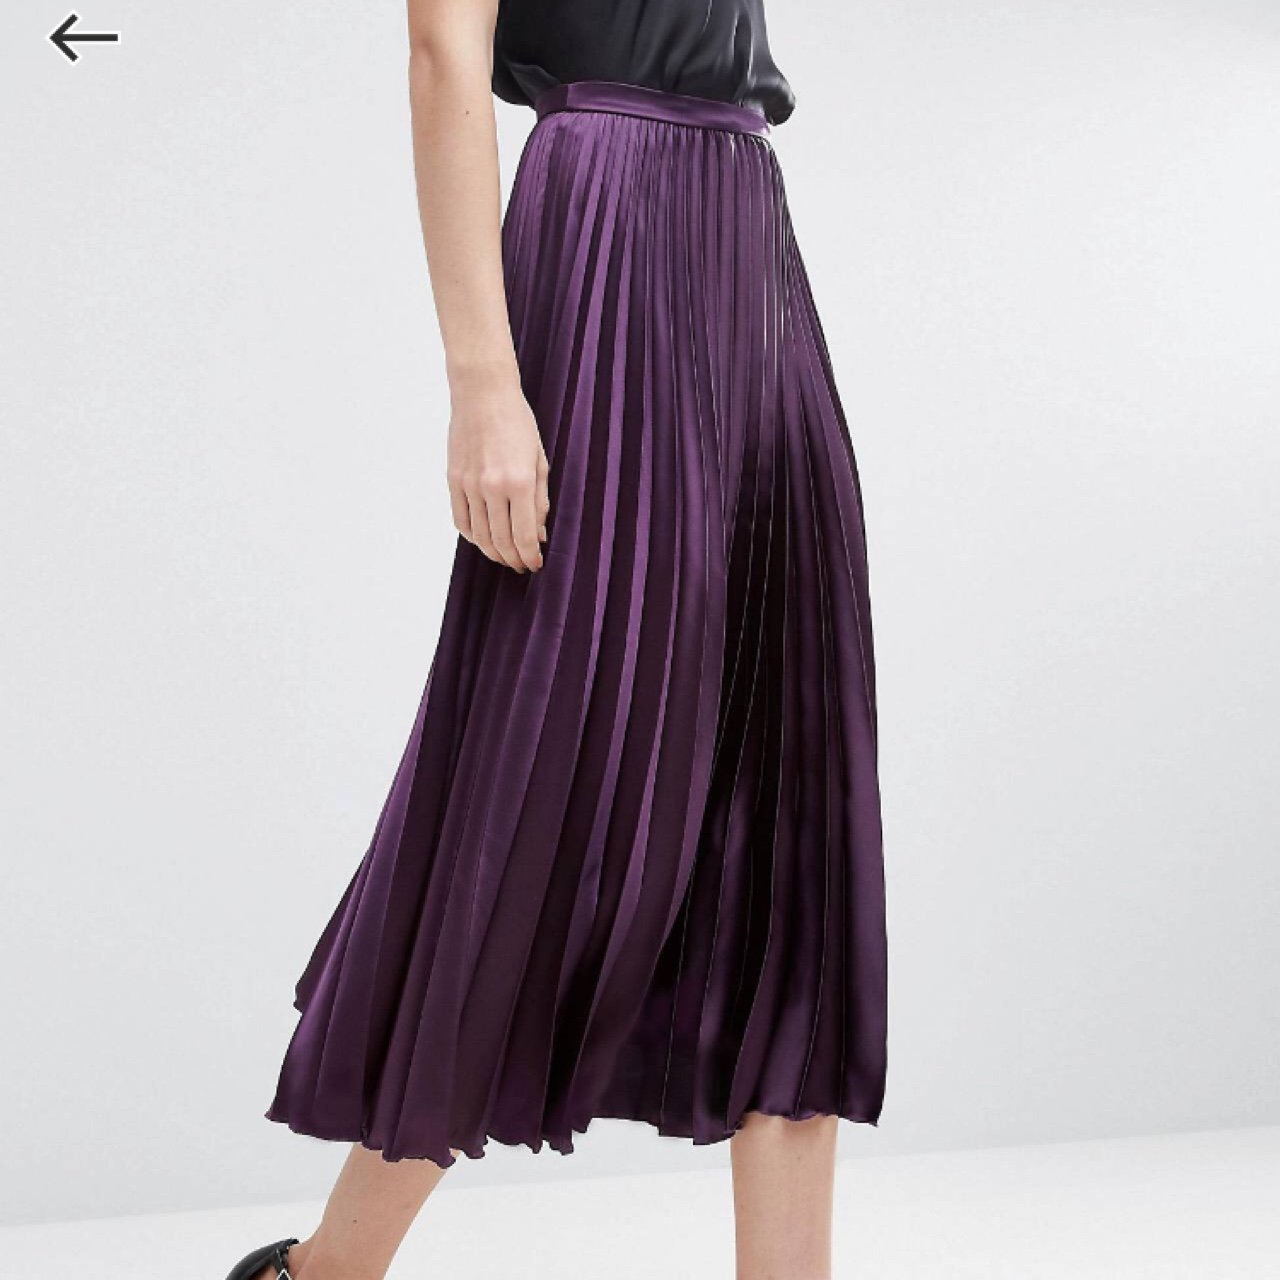 64e3c868a3493c @layee. last year. London, UK. ASOS TALL midi skirt in dark purple pleated  ...